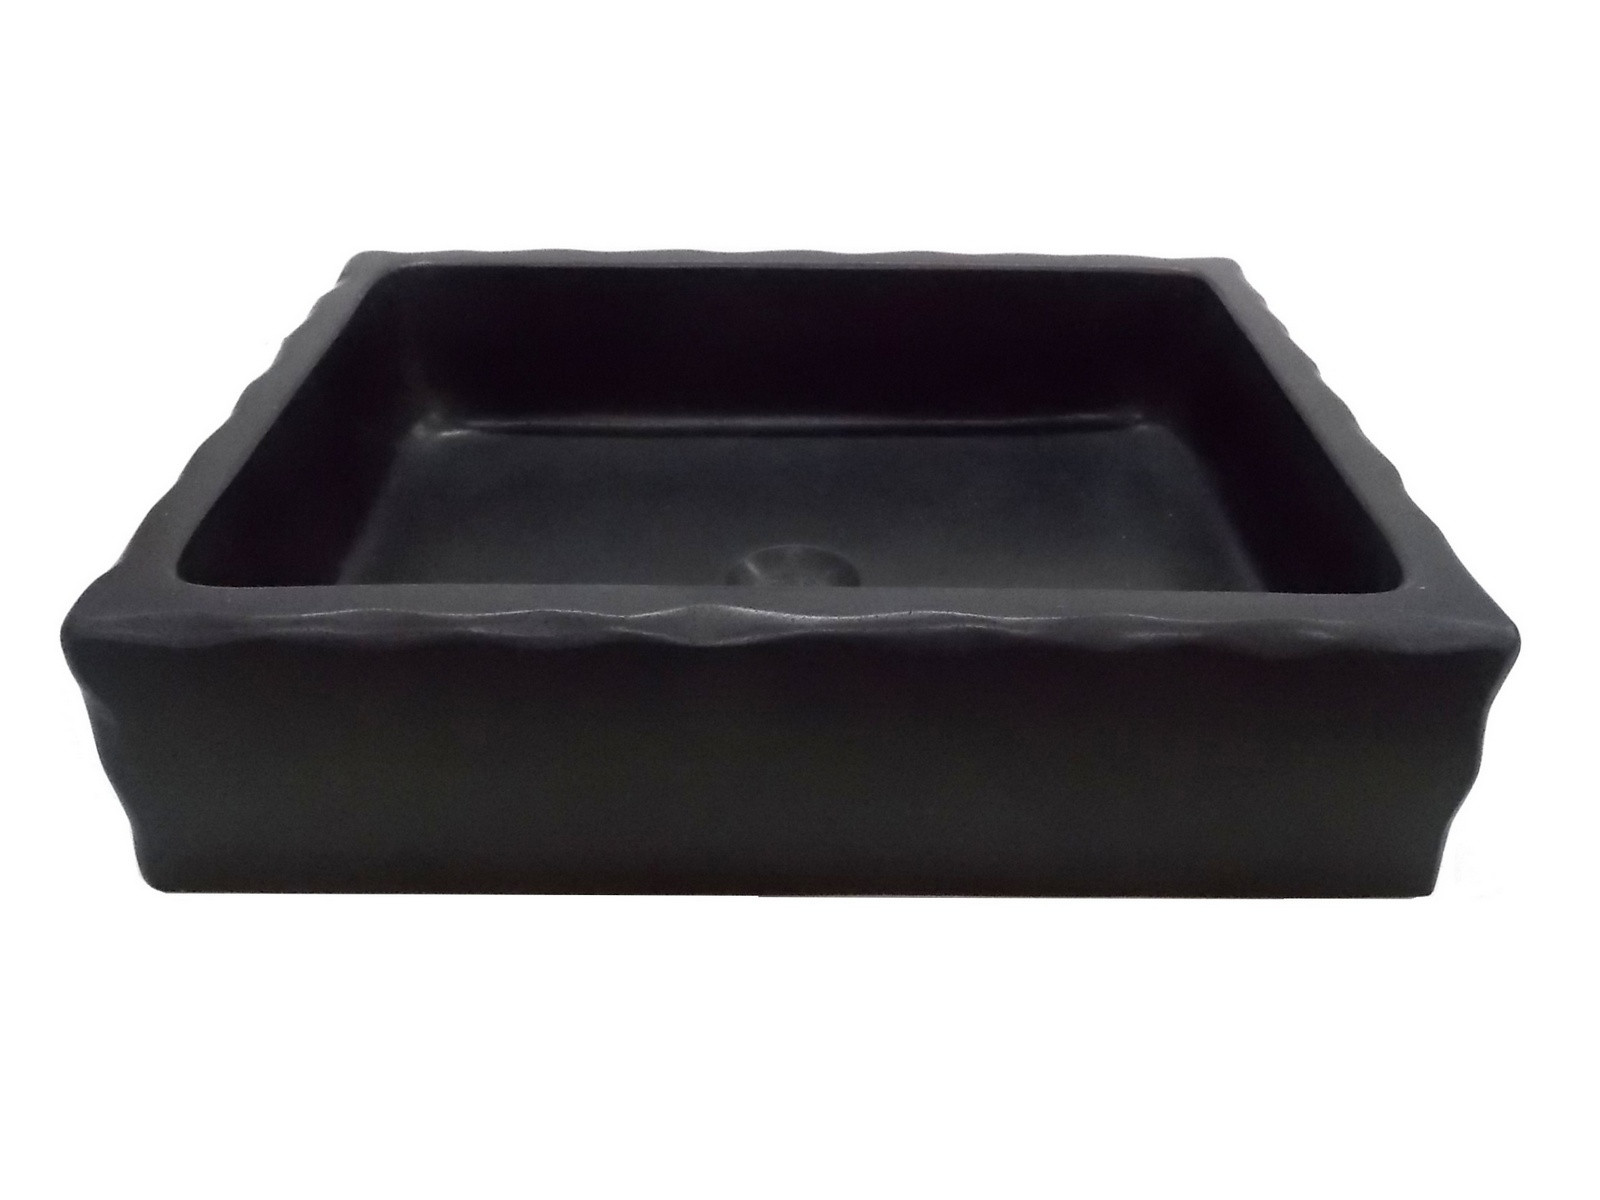 Eden Bath EB_S037LS-H Antique Rectangular Vessel Sink In Honed Lava Stone